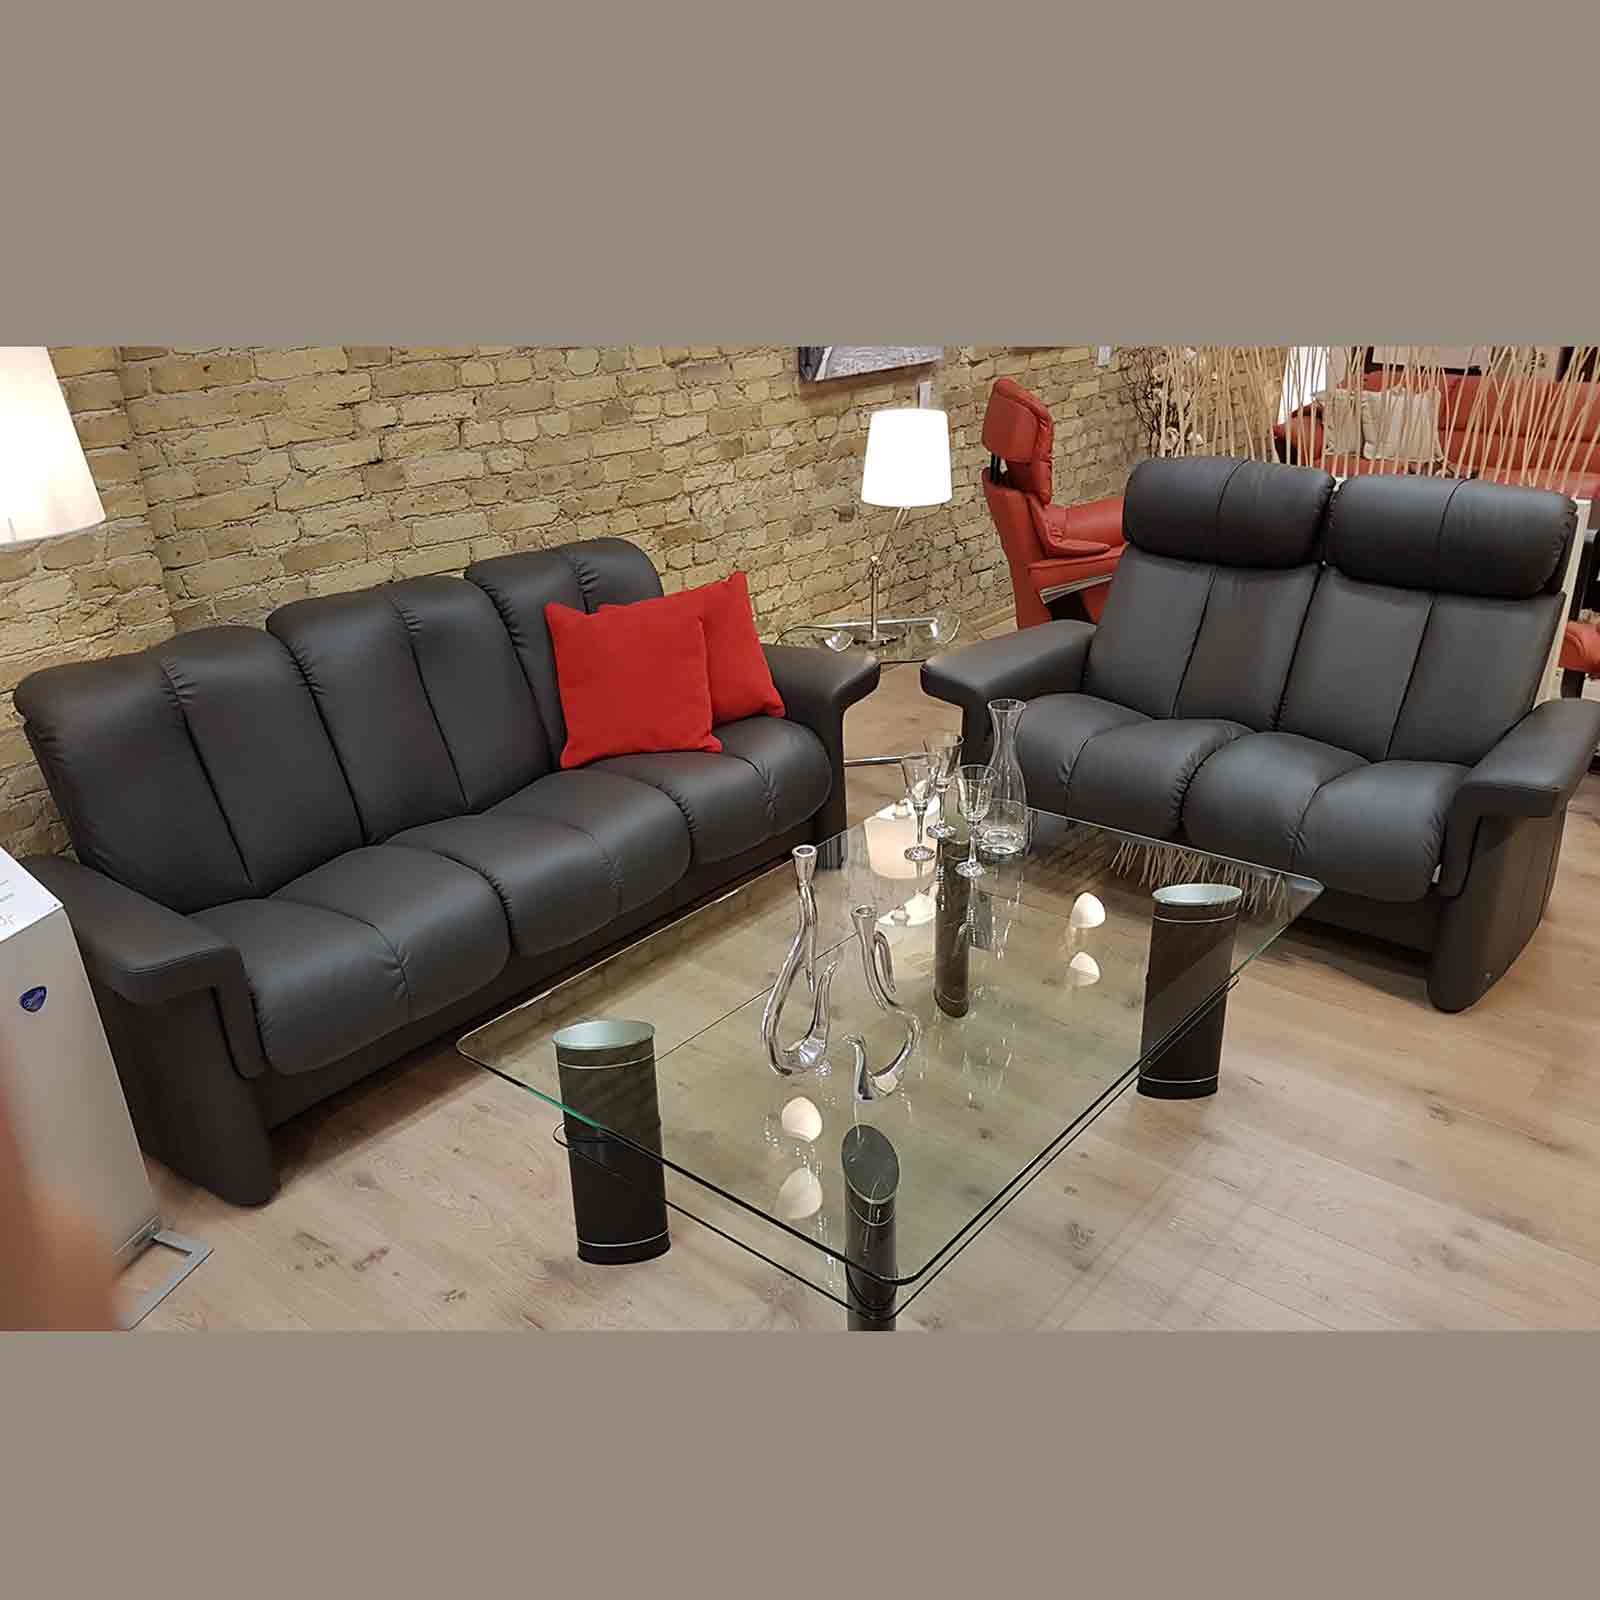 Stressless sofa 3 sitzer 2 sitzer legend m lederfarbe rock for Sofa 2 sitzer leder